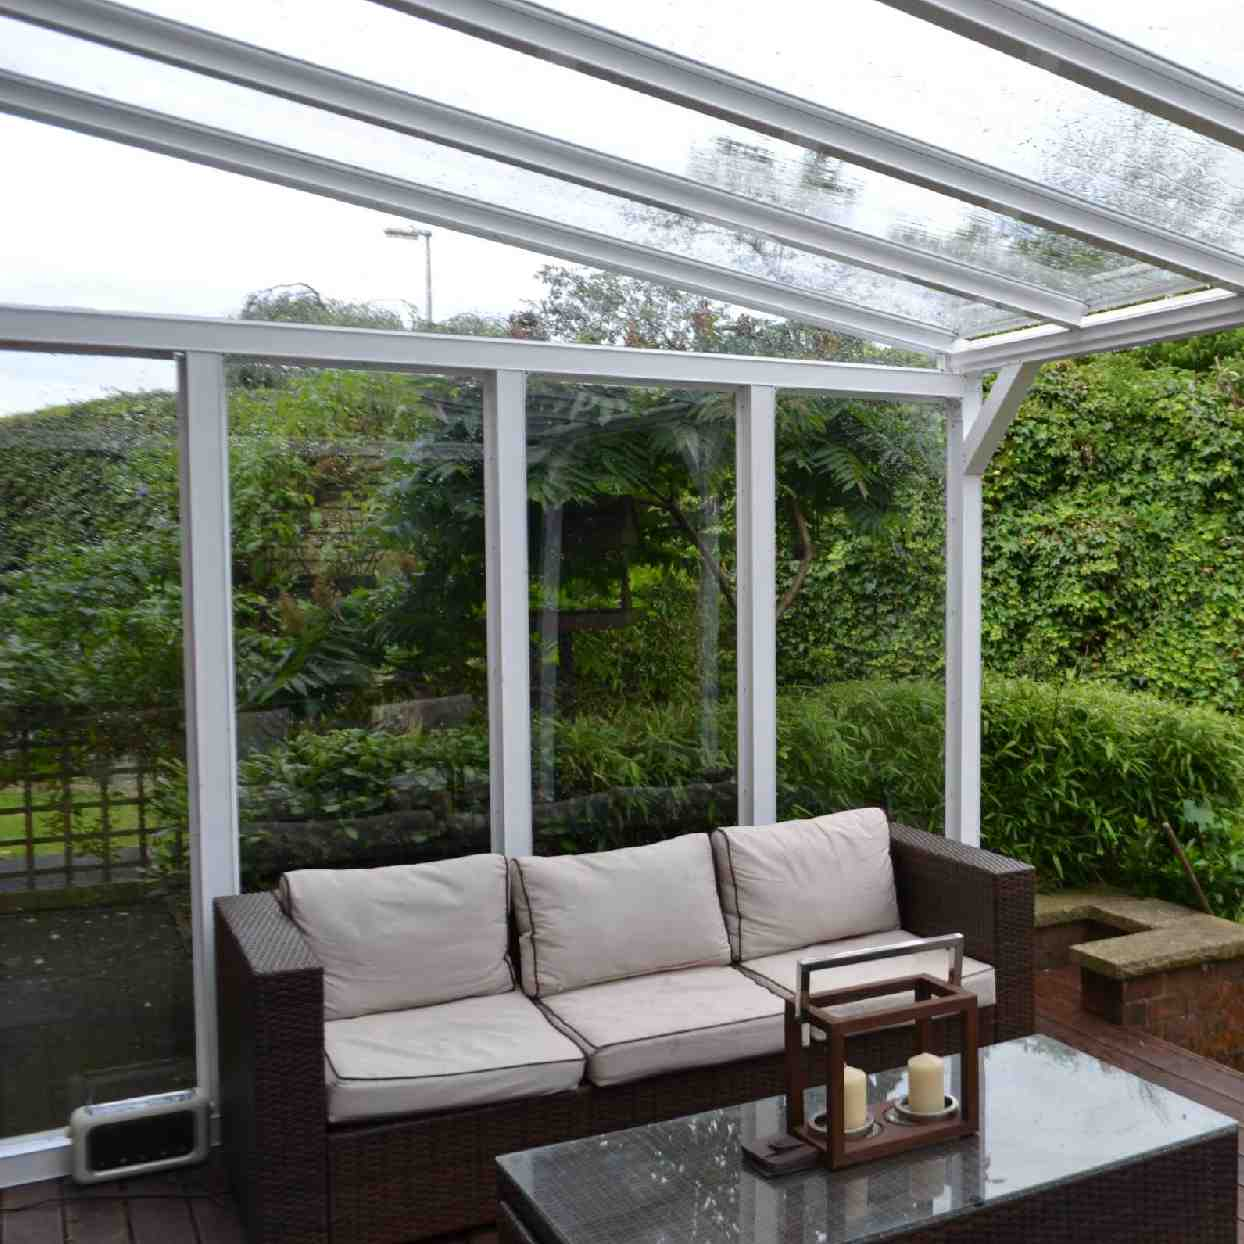 Buy Omega Verandah with 16mm Polycarbonate Glazing - 8.4m (W) x 4.5m (P), (4) Supporting Posts online today